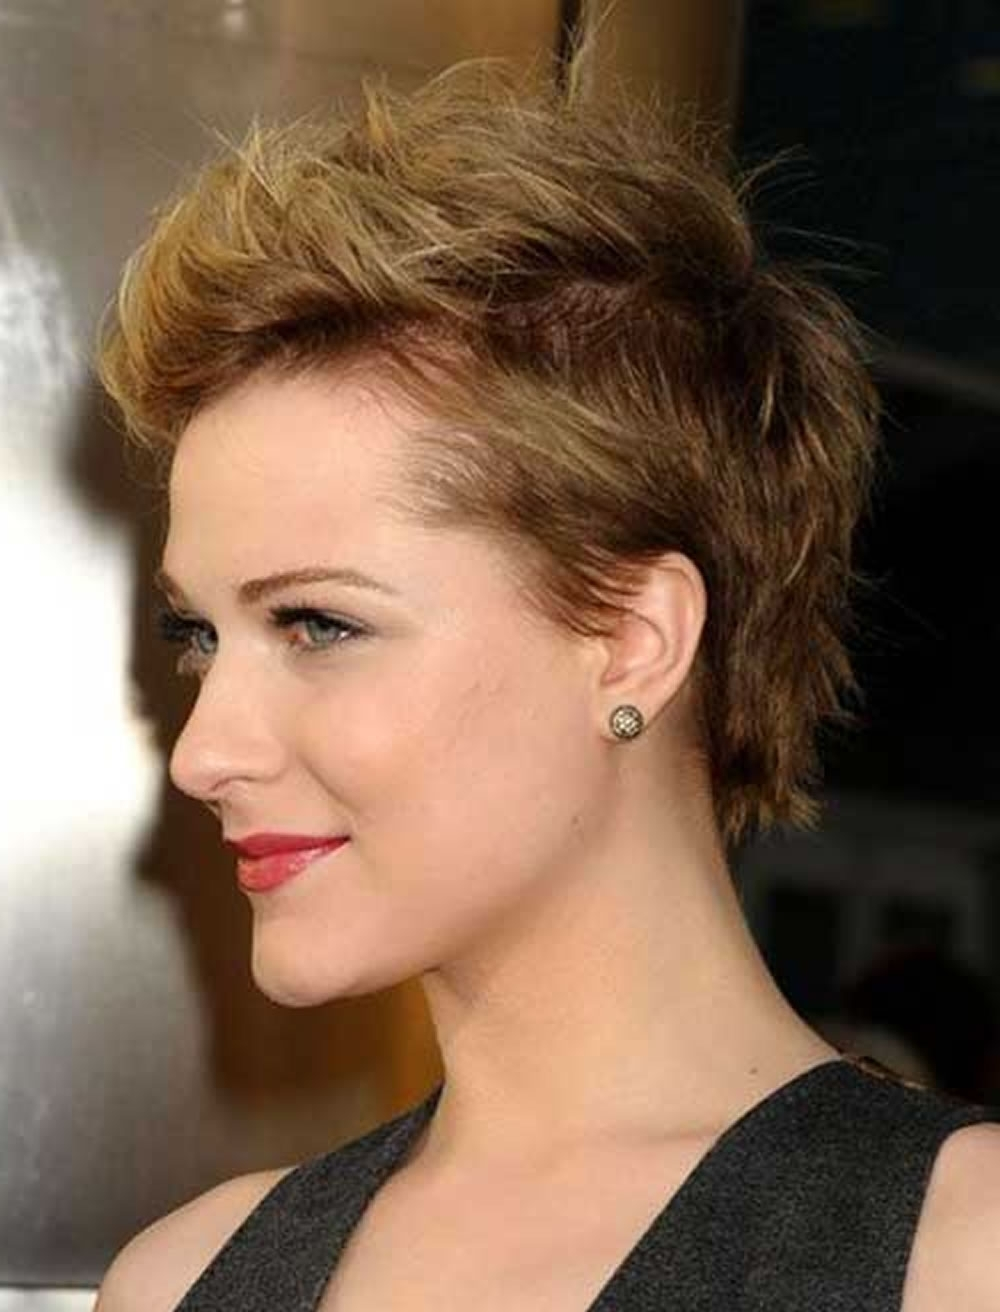 25 Unique Pixie Haircuts For Girls 2018 2019 – Latest Pixie Cut Ideas For Most Current Pixie Hairstyles For Girls (View 5 of 15)